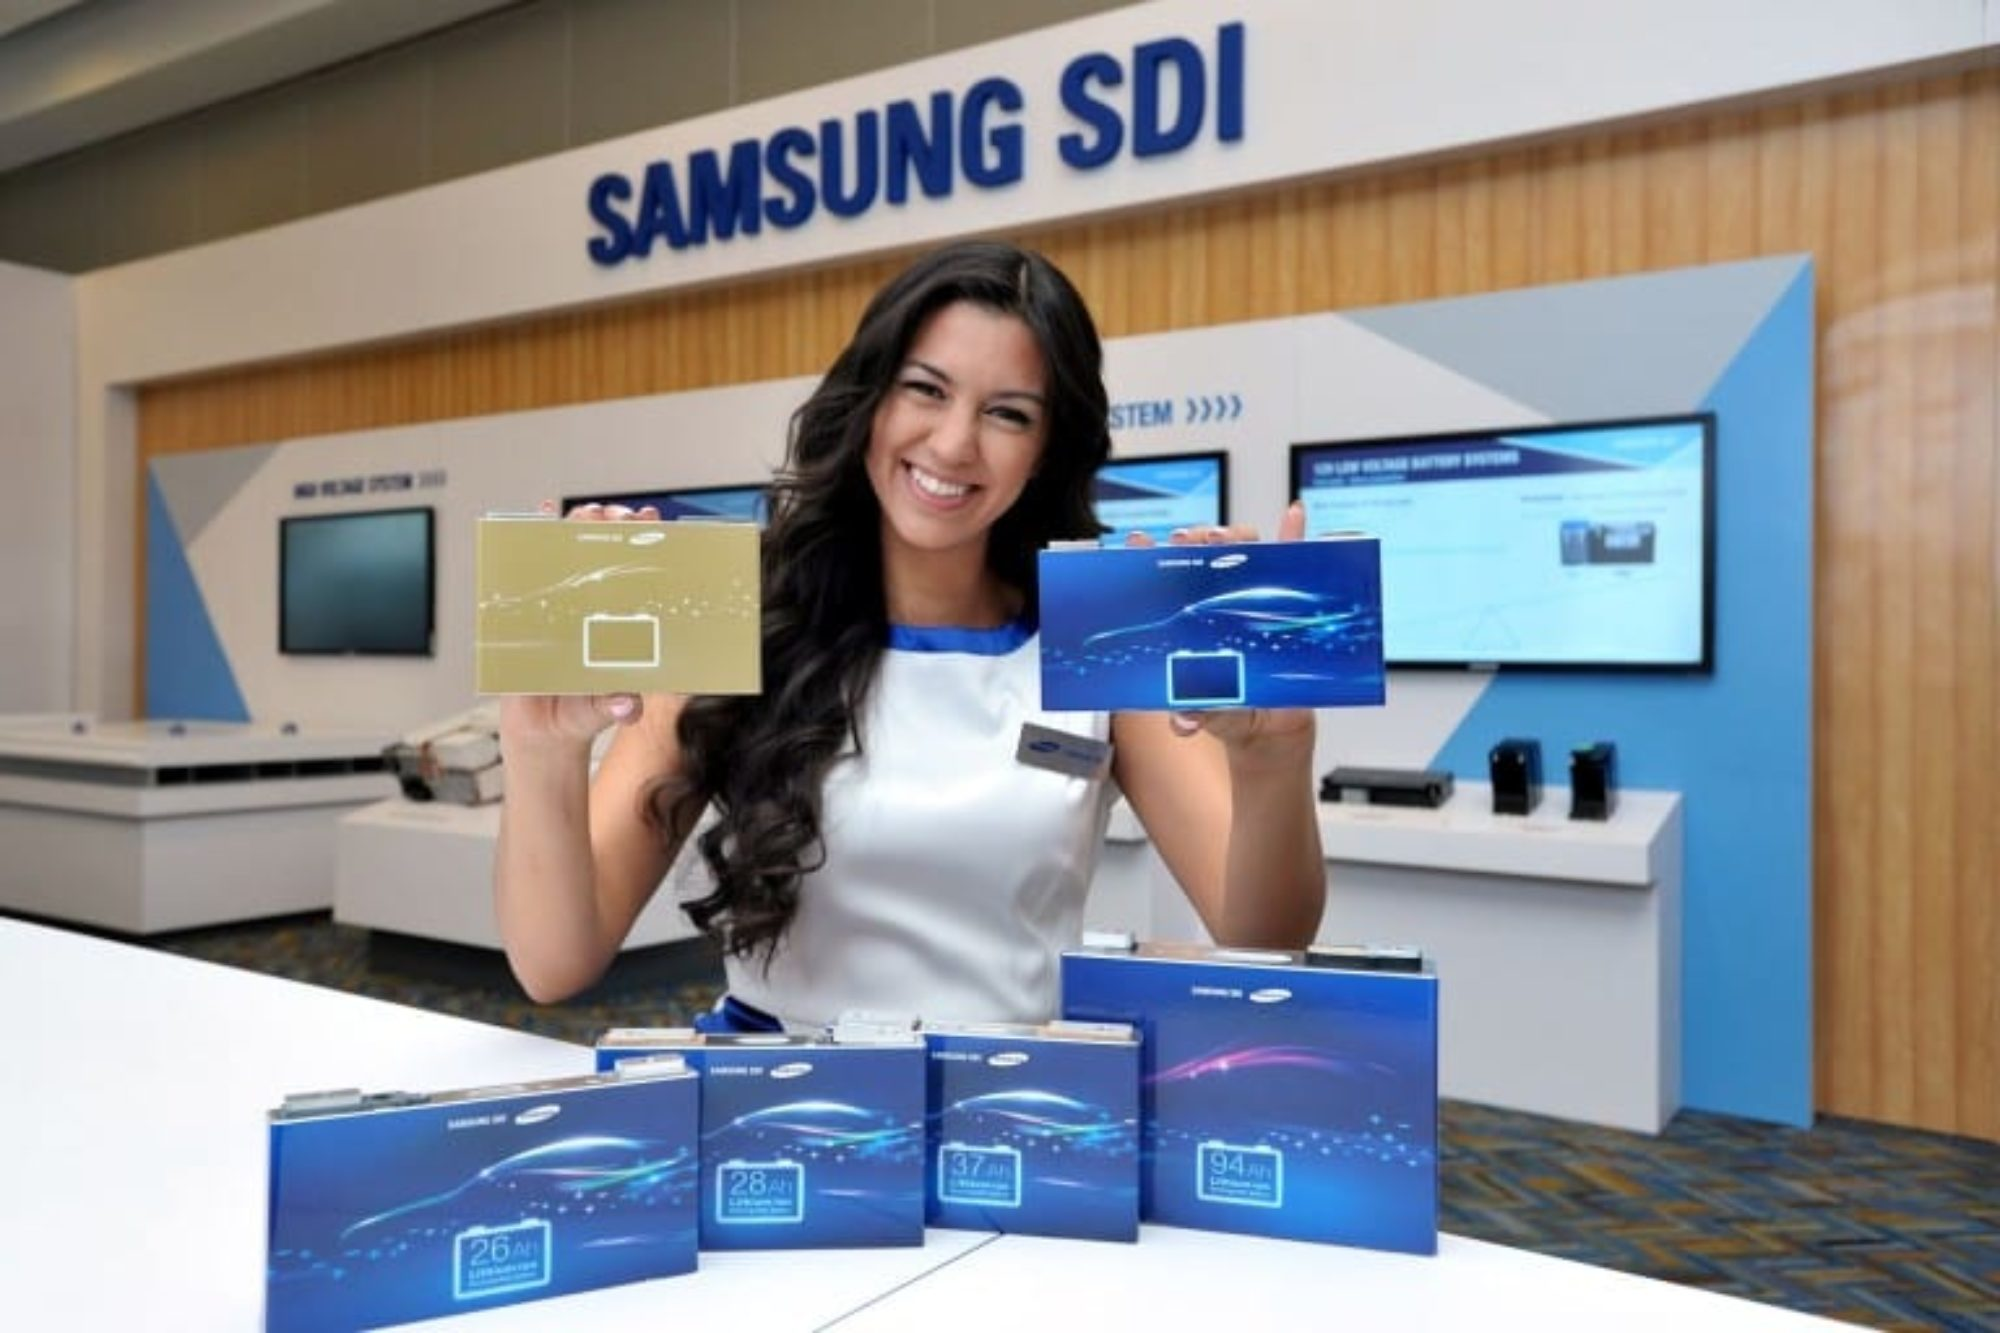 Samsung SDI Claims Significant Advance In Graphene Battery